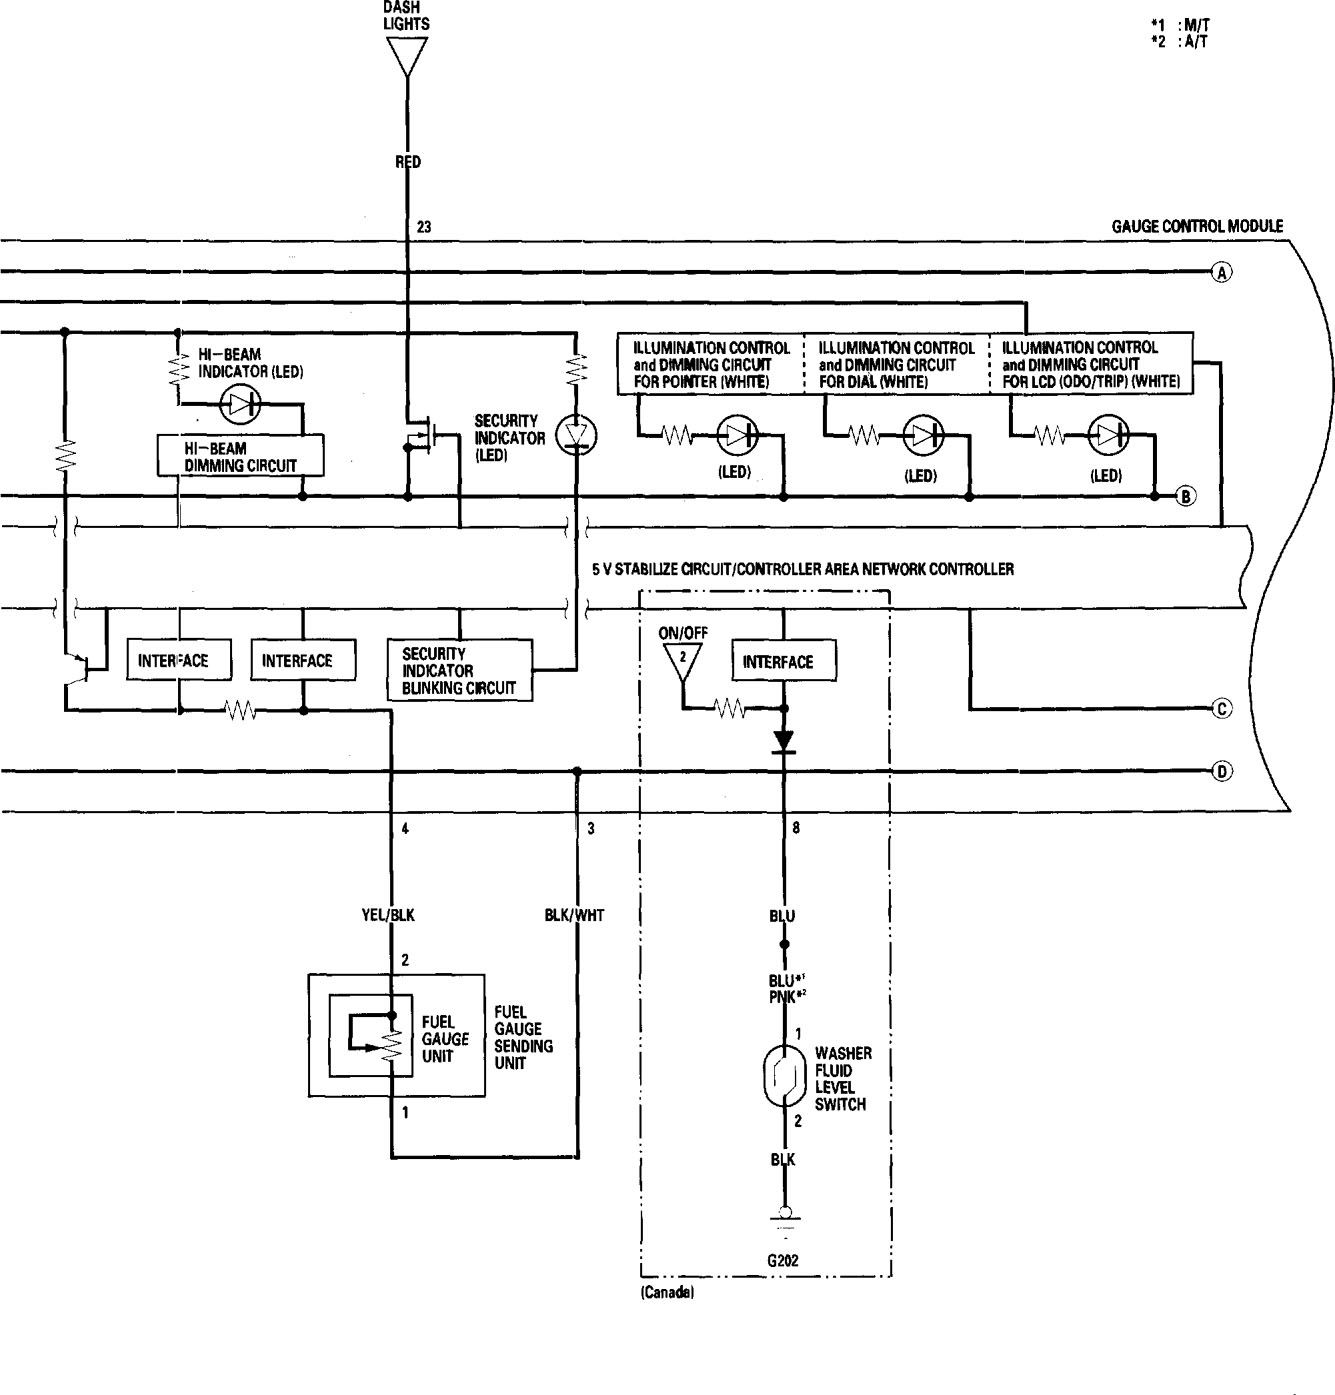 Honda Accord 2006 Wiring Diagrams Instrumentation Carknowledge Switch Diagram 1994 Gx630 Part 2